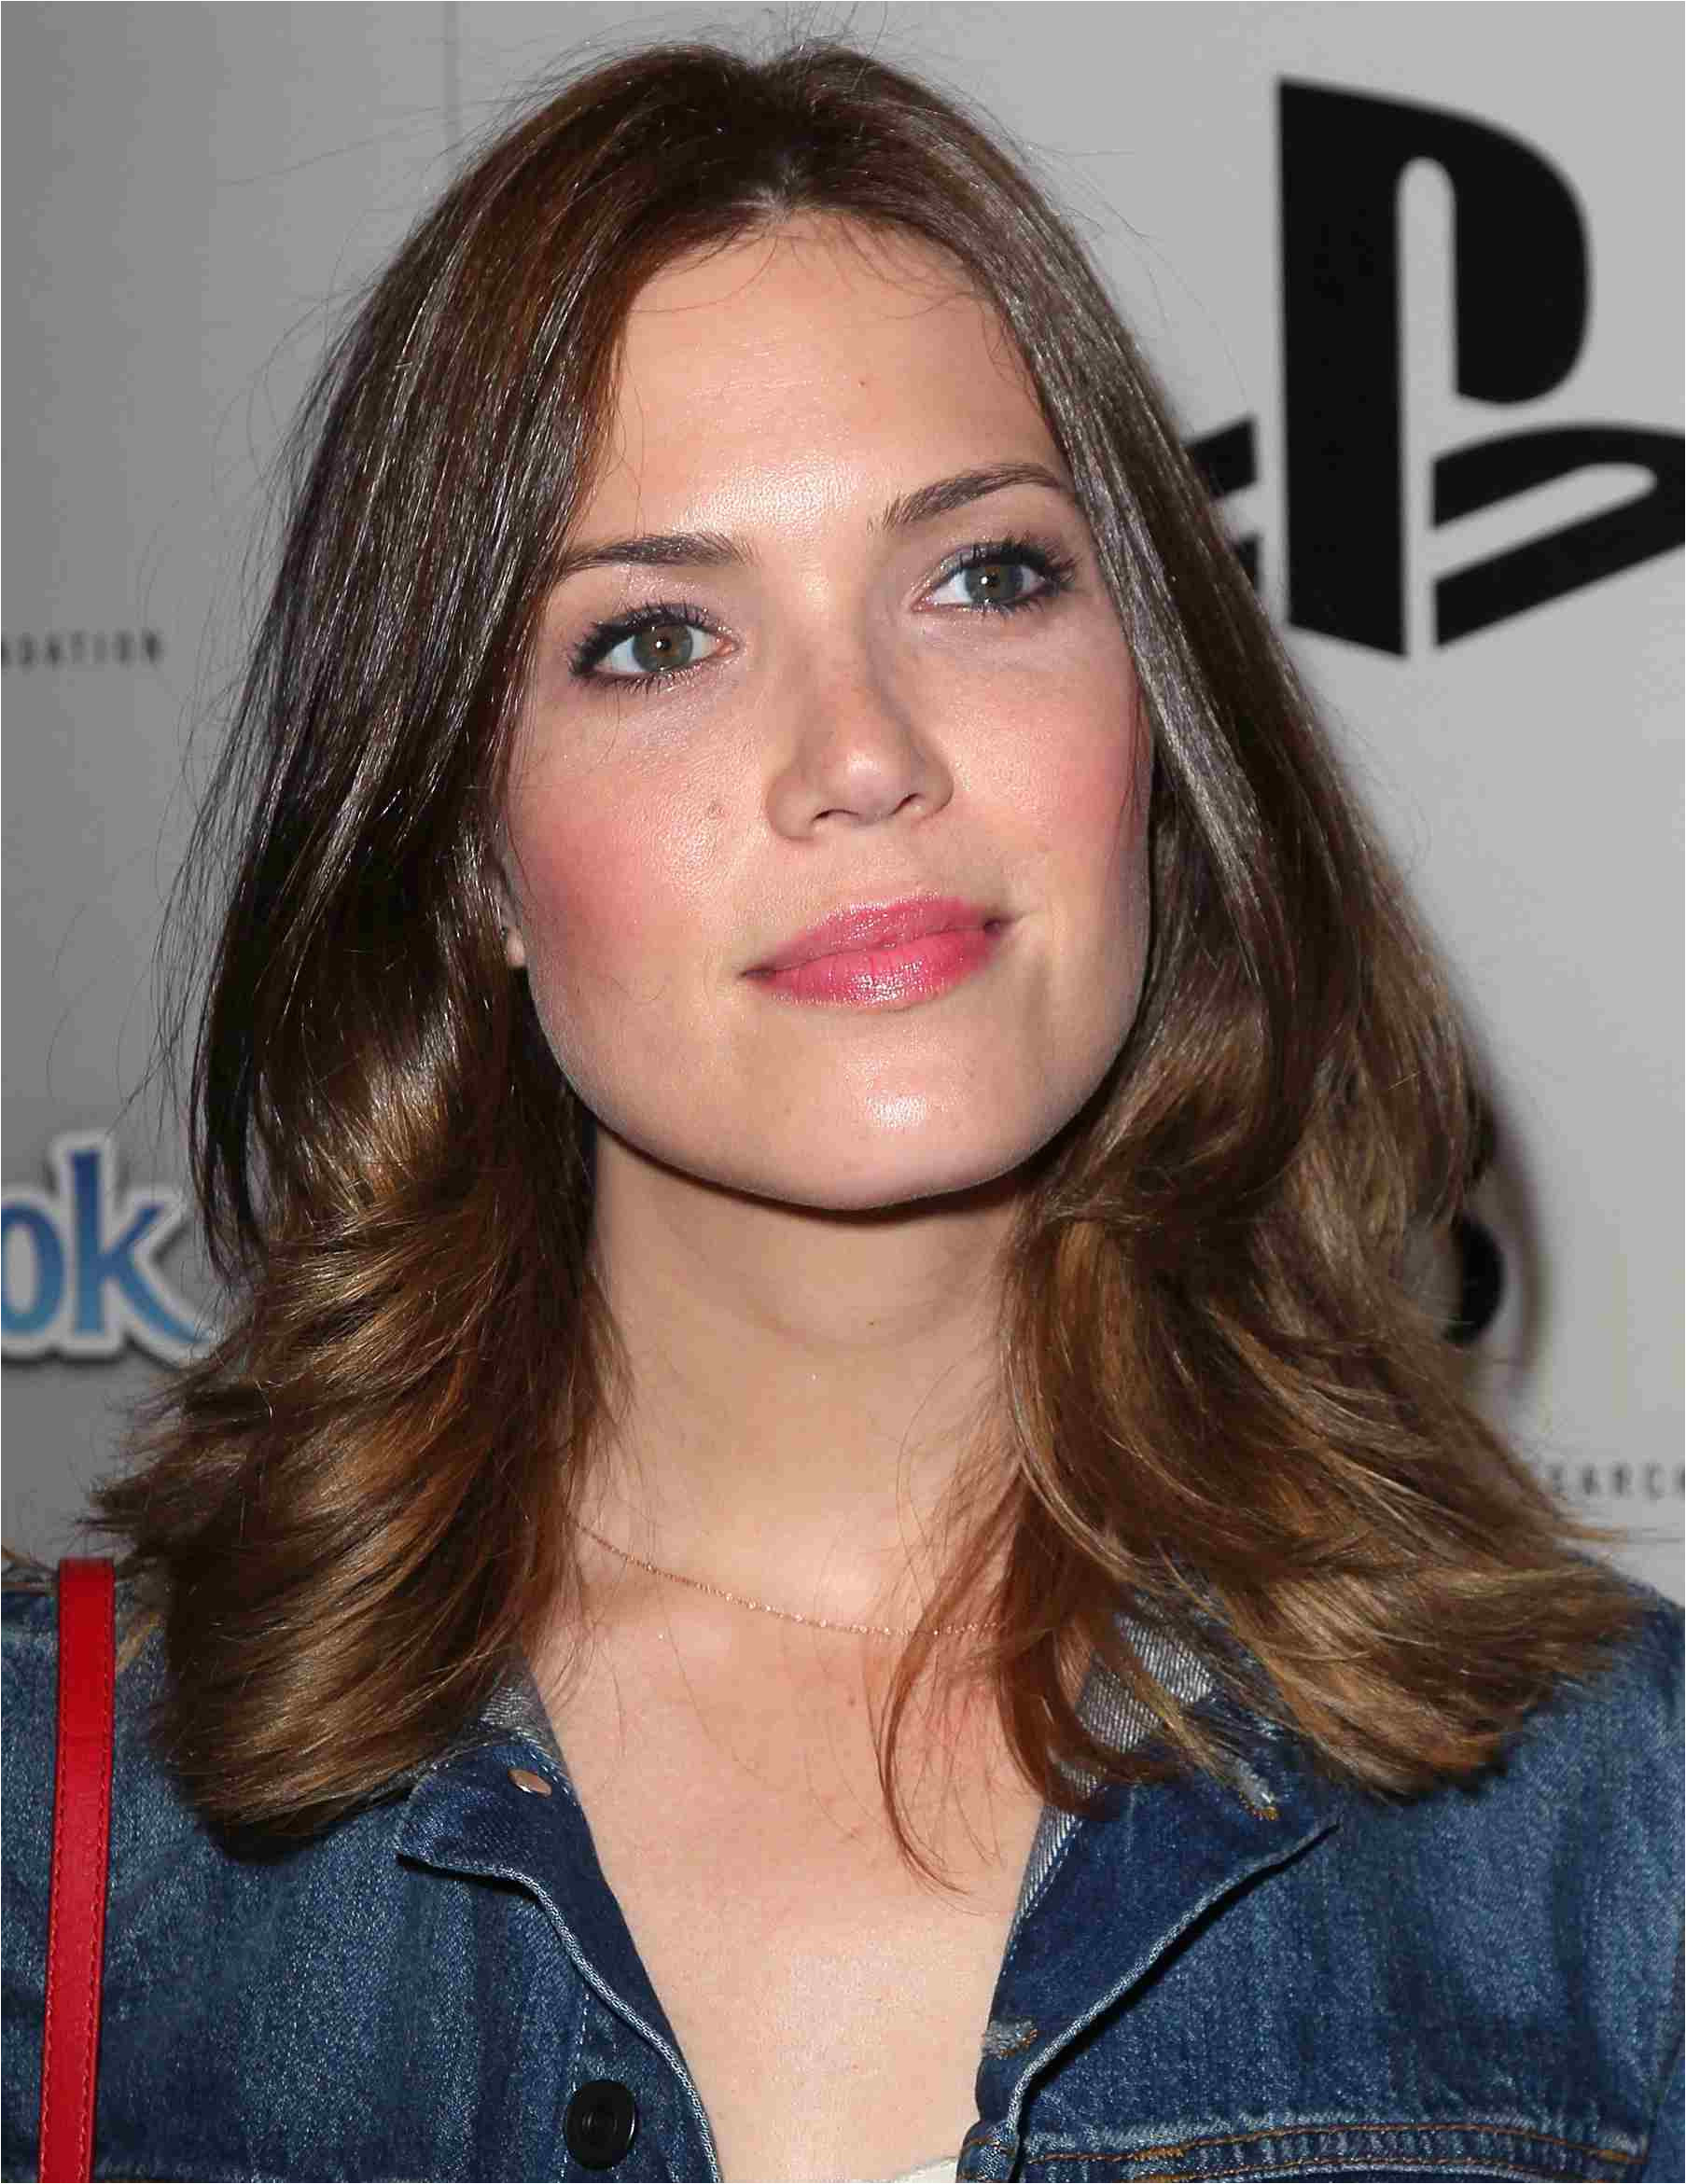 mandy moore square face shape 56a f9b58eba4b